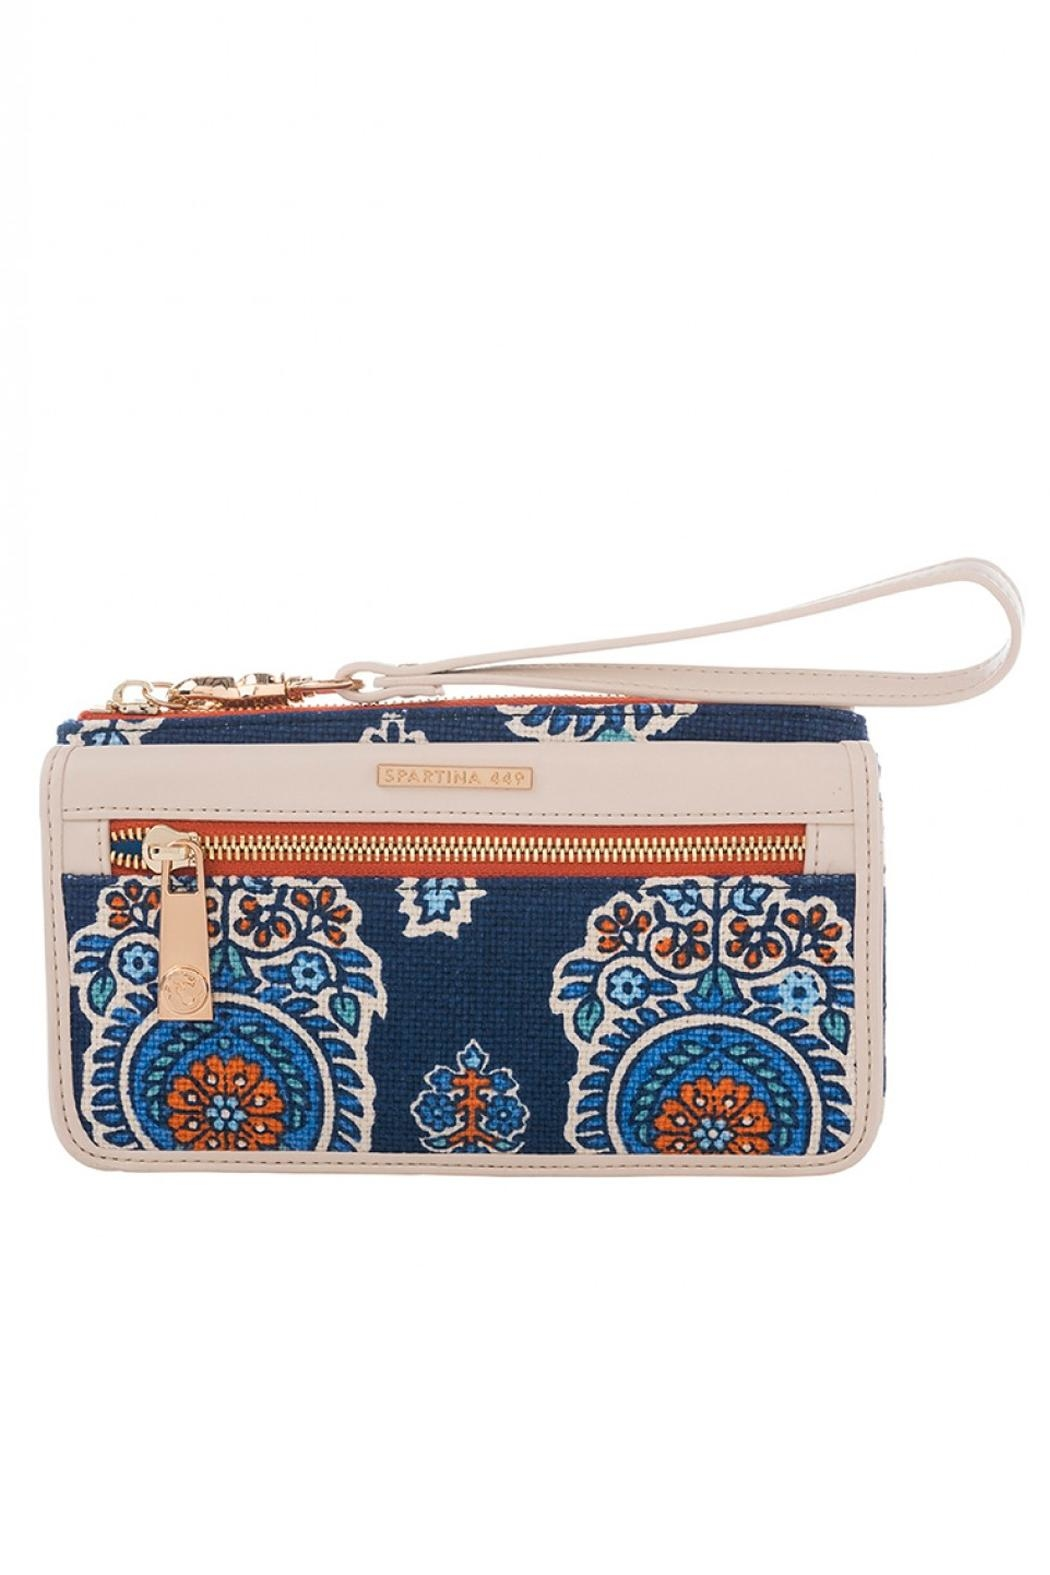 Spartina 449 Emma Wallet - Main Image